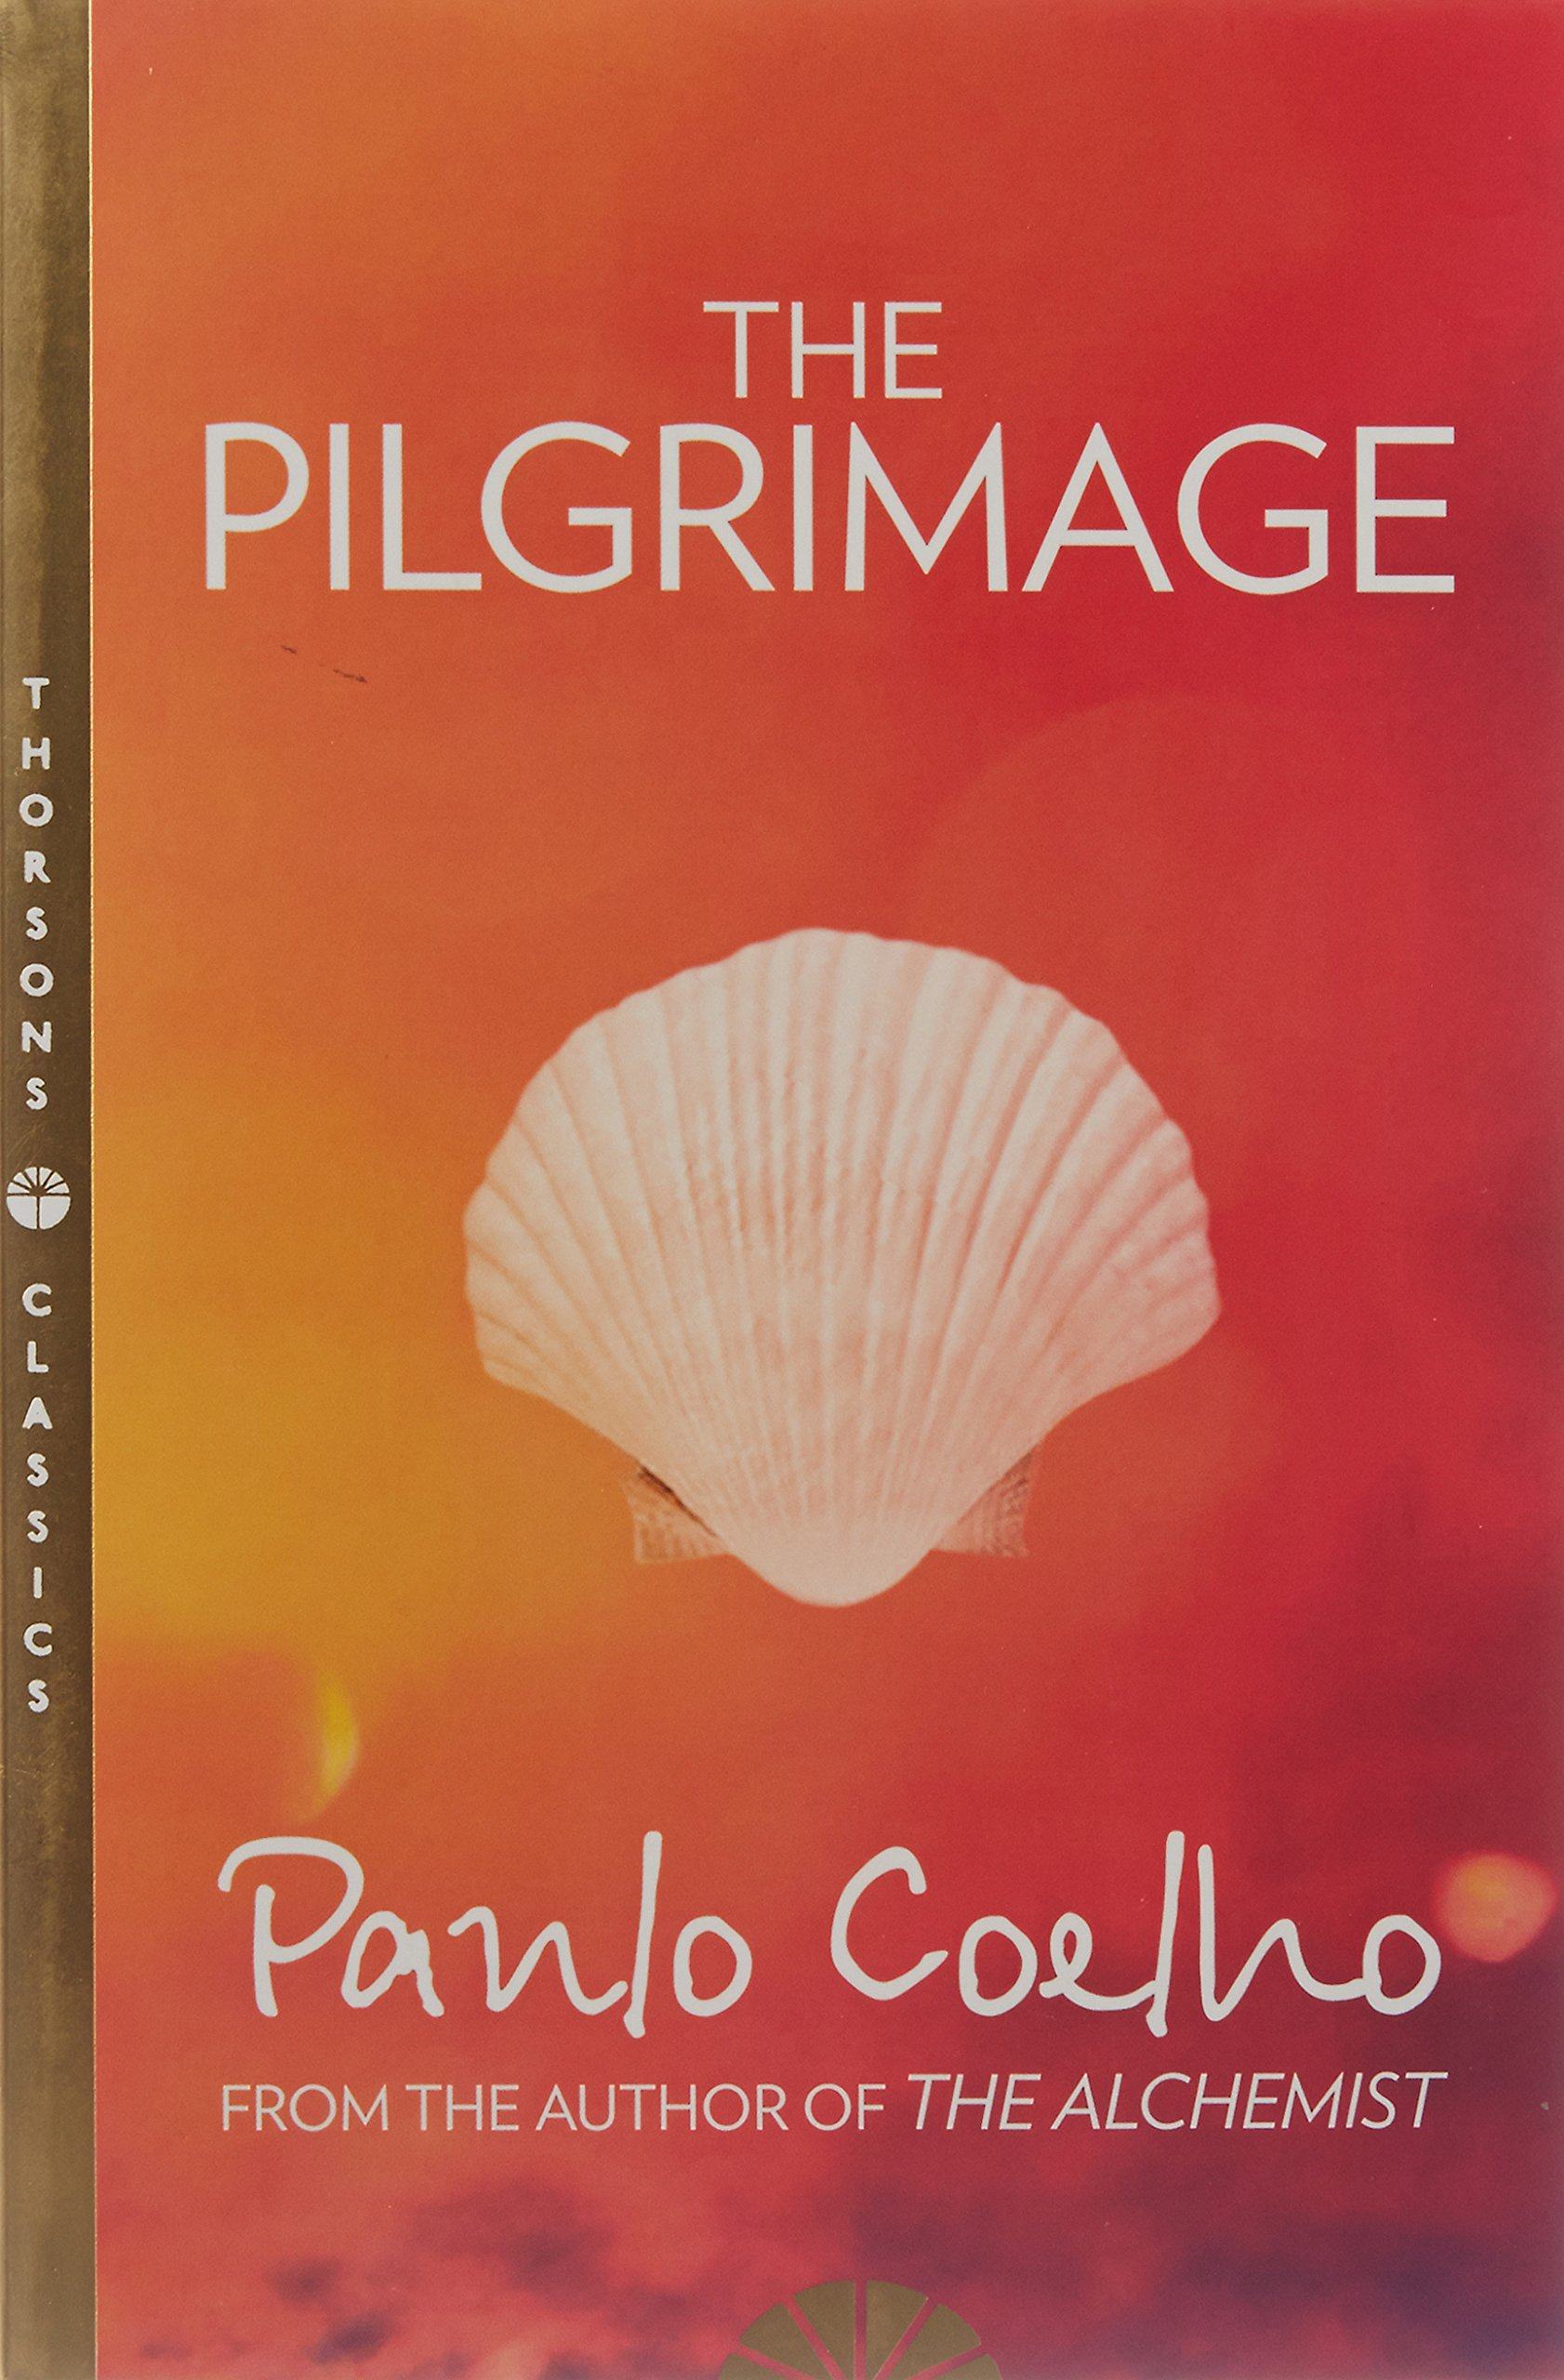 novel alchemist buy the pilgrimage book online at low prices in  buy the pilgrimage book online at low prices in the buy the pilgrimage book online at